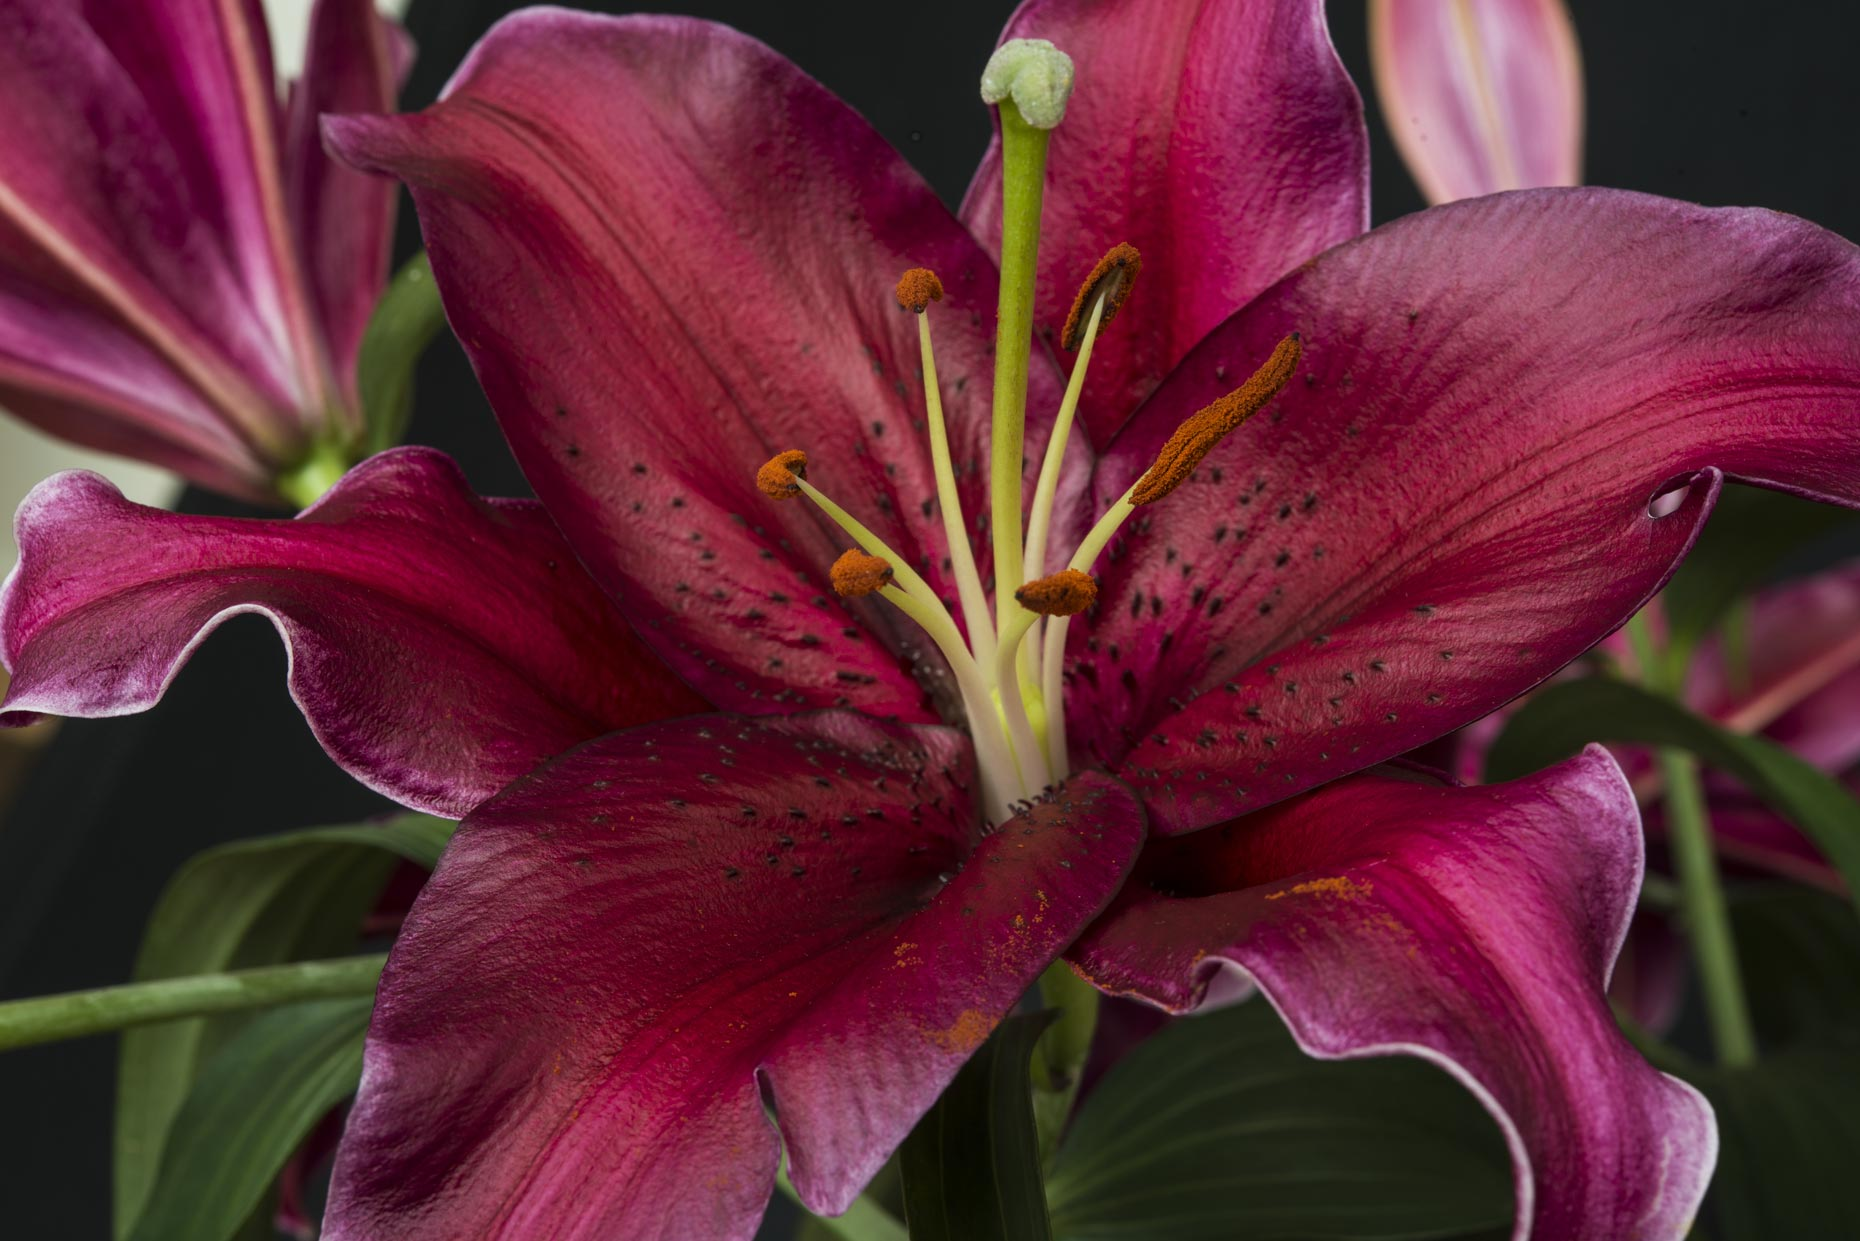 Professional Flower photography of a red lily with pollen